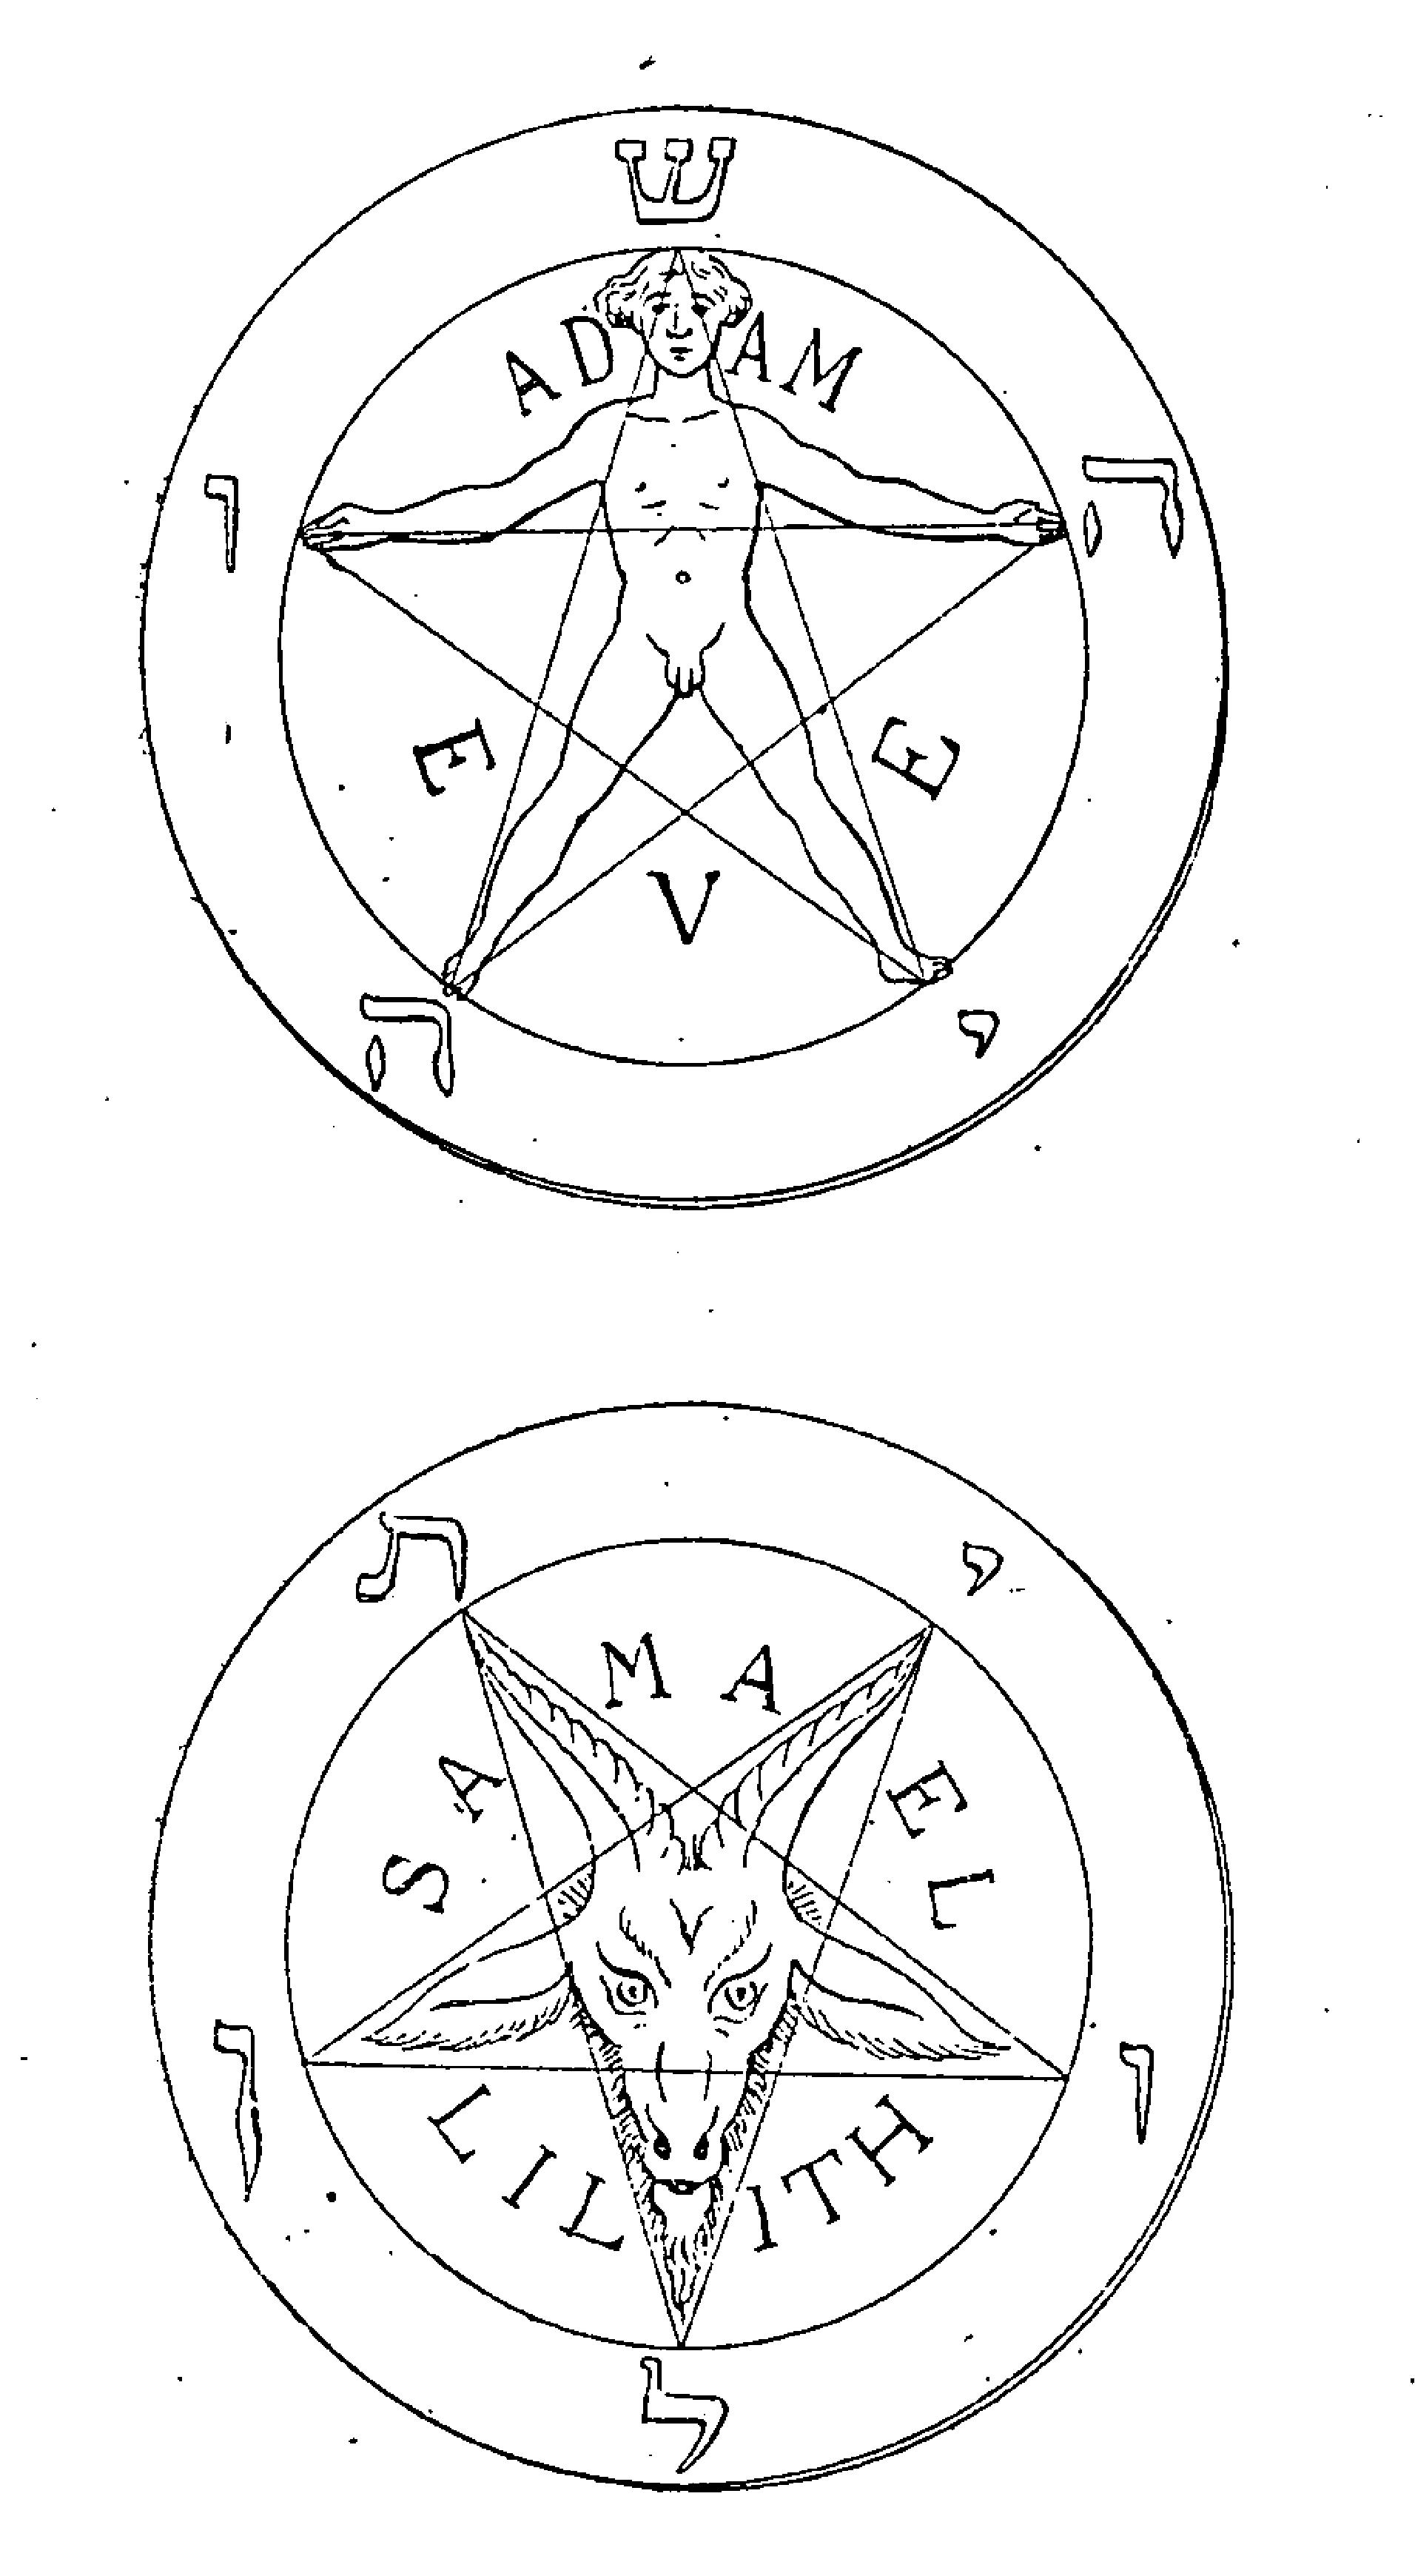 Two pentagrams taken from the 1897 book 'La Clef de la Magie Noire' by Stanislas de Guaita.